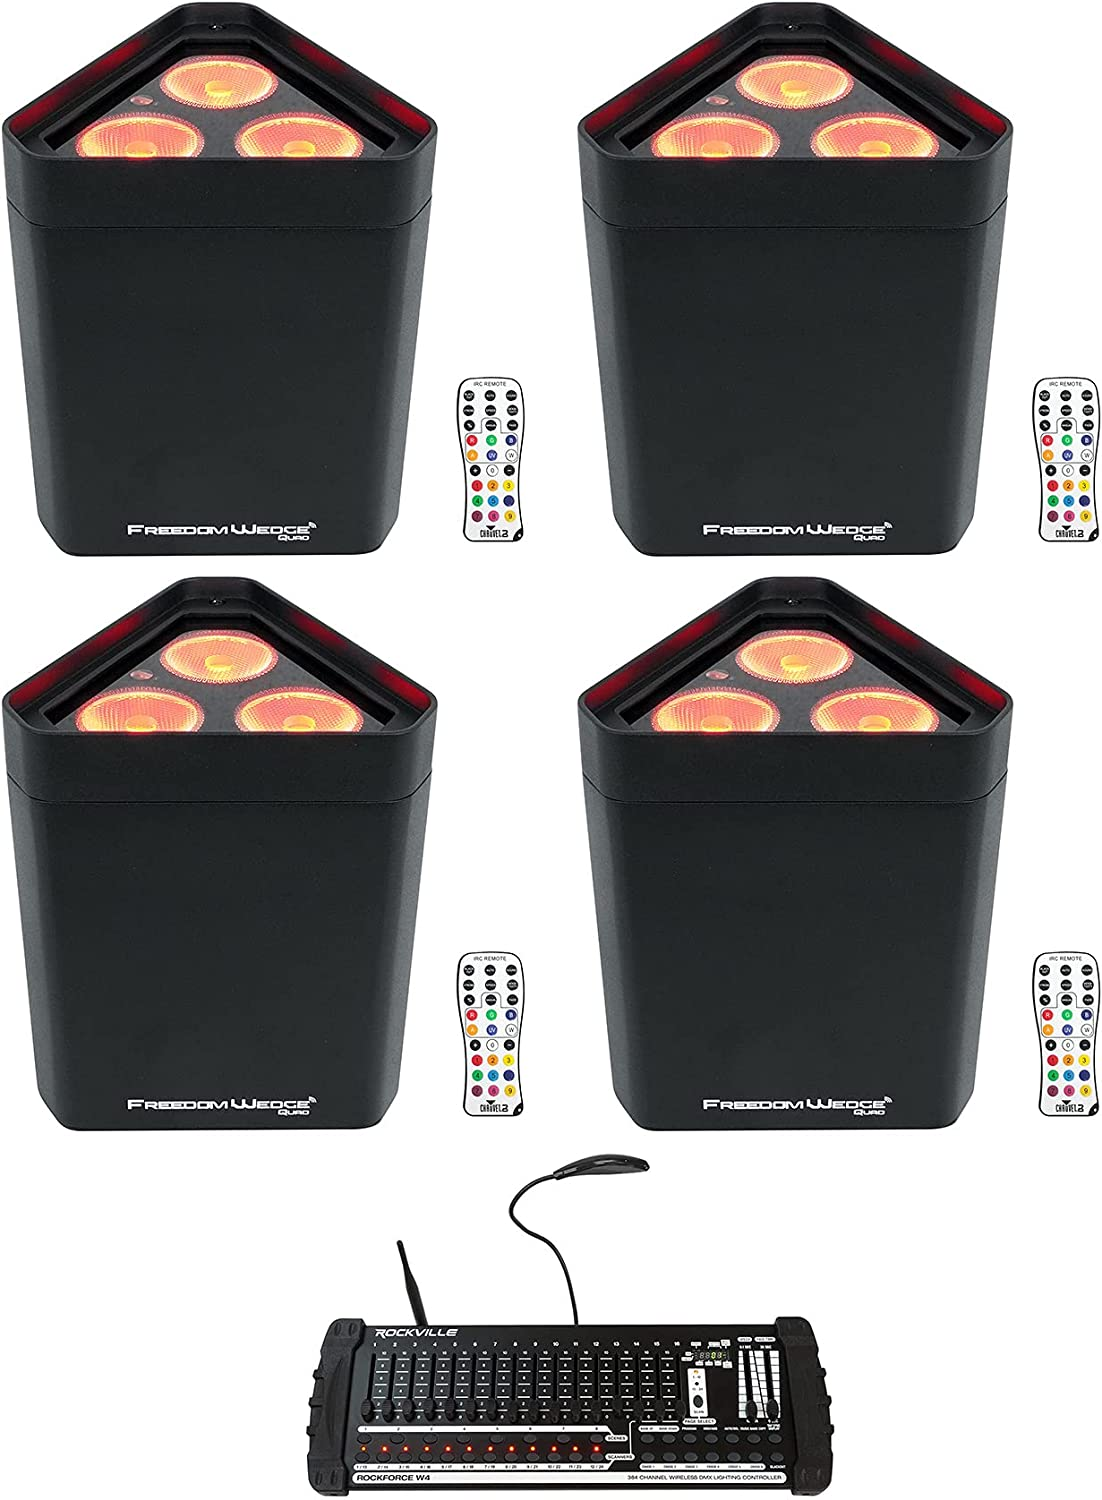 4 Chauvet Freedom Wedge Quad Sales of SALE items from new works Rechargeable w Wash Lights Safety and trust Bundle